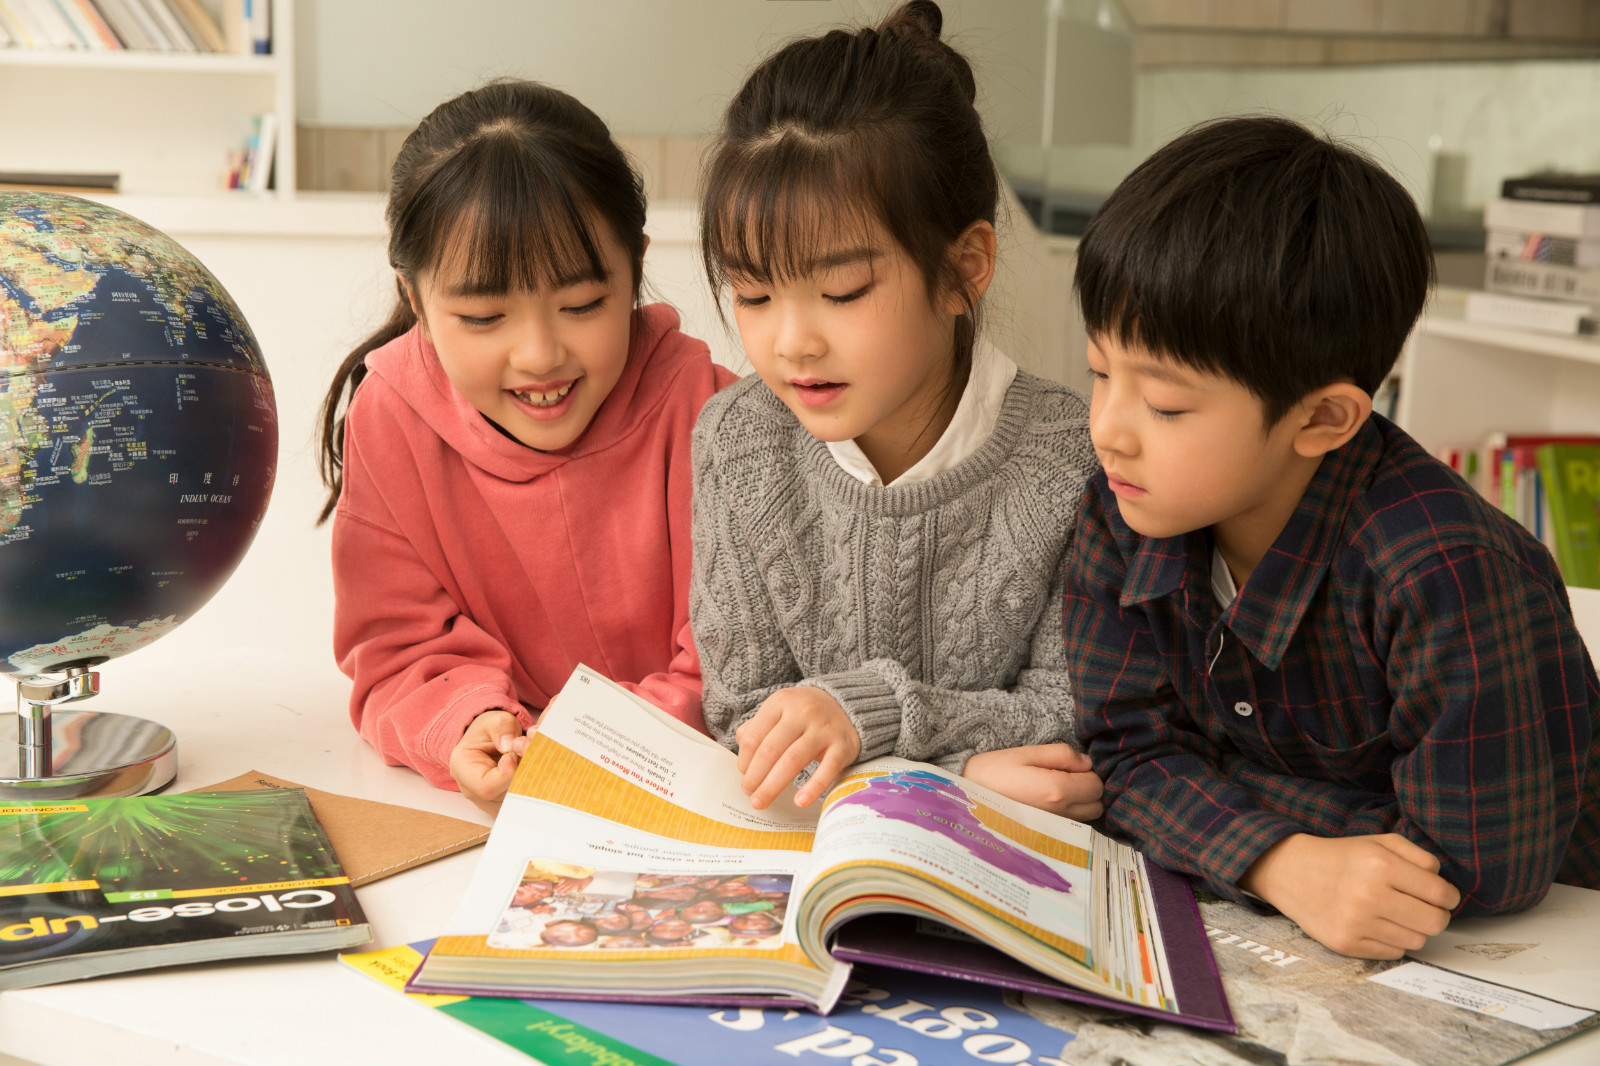 Our North American-based instructors provide a Western-style educational experience to Chinese children between the ages of 6-14.